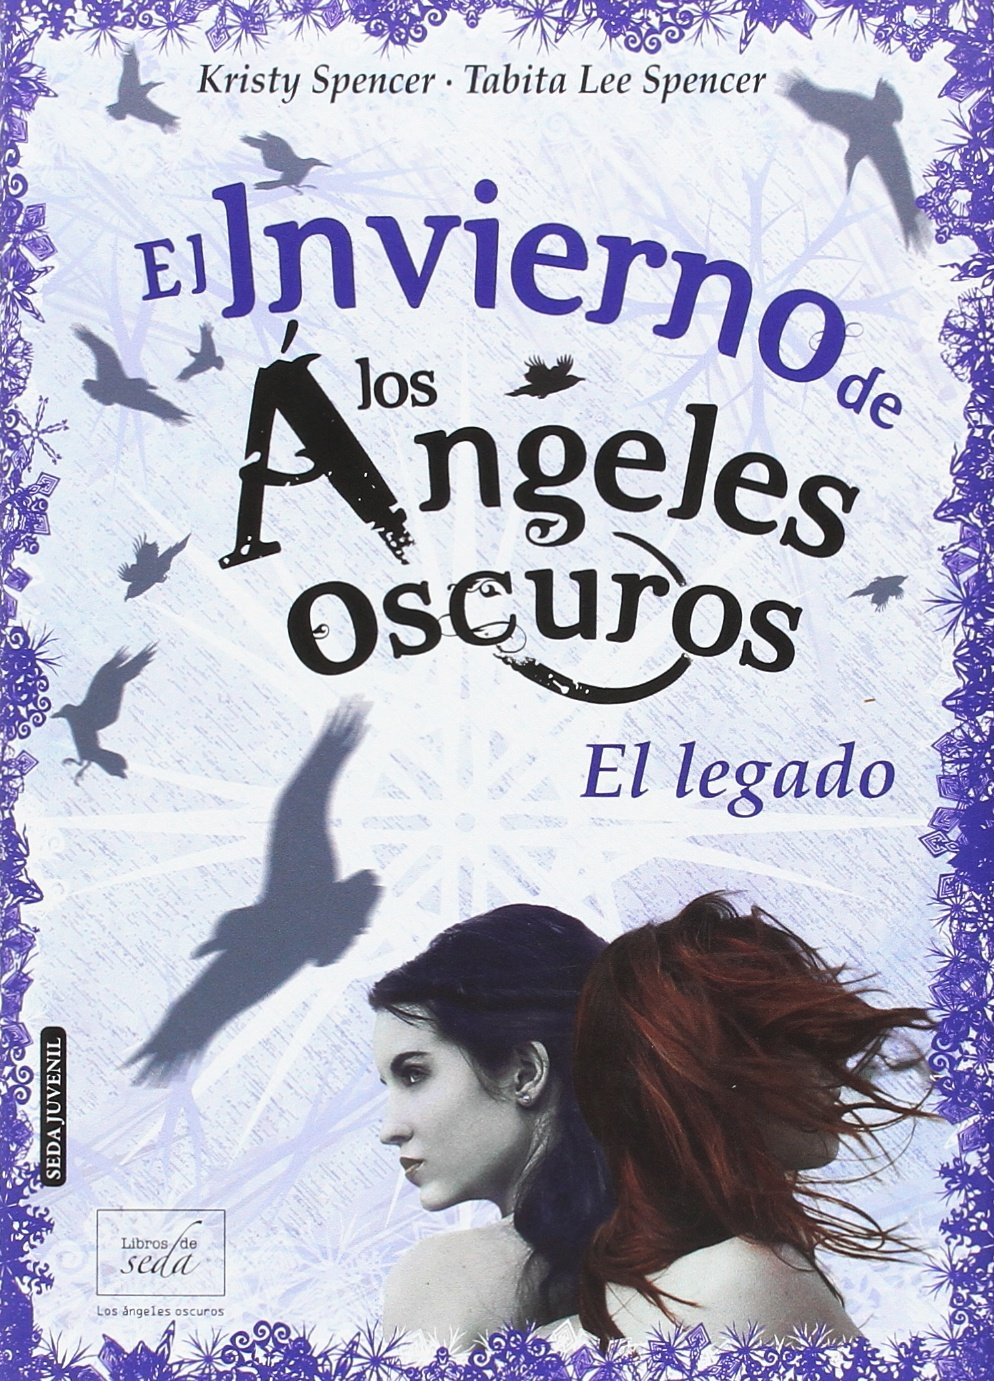 EL INVIERNO DE LOS Ã NGELES OSCUROS: EL LEGADO: Kristy & Spencer, Tabita Lee Spencer: 9788416550159: Amazon.com: Books